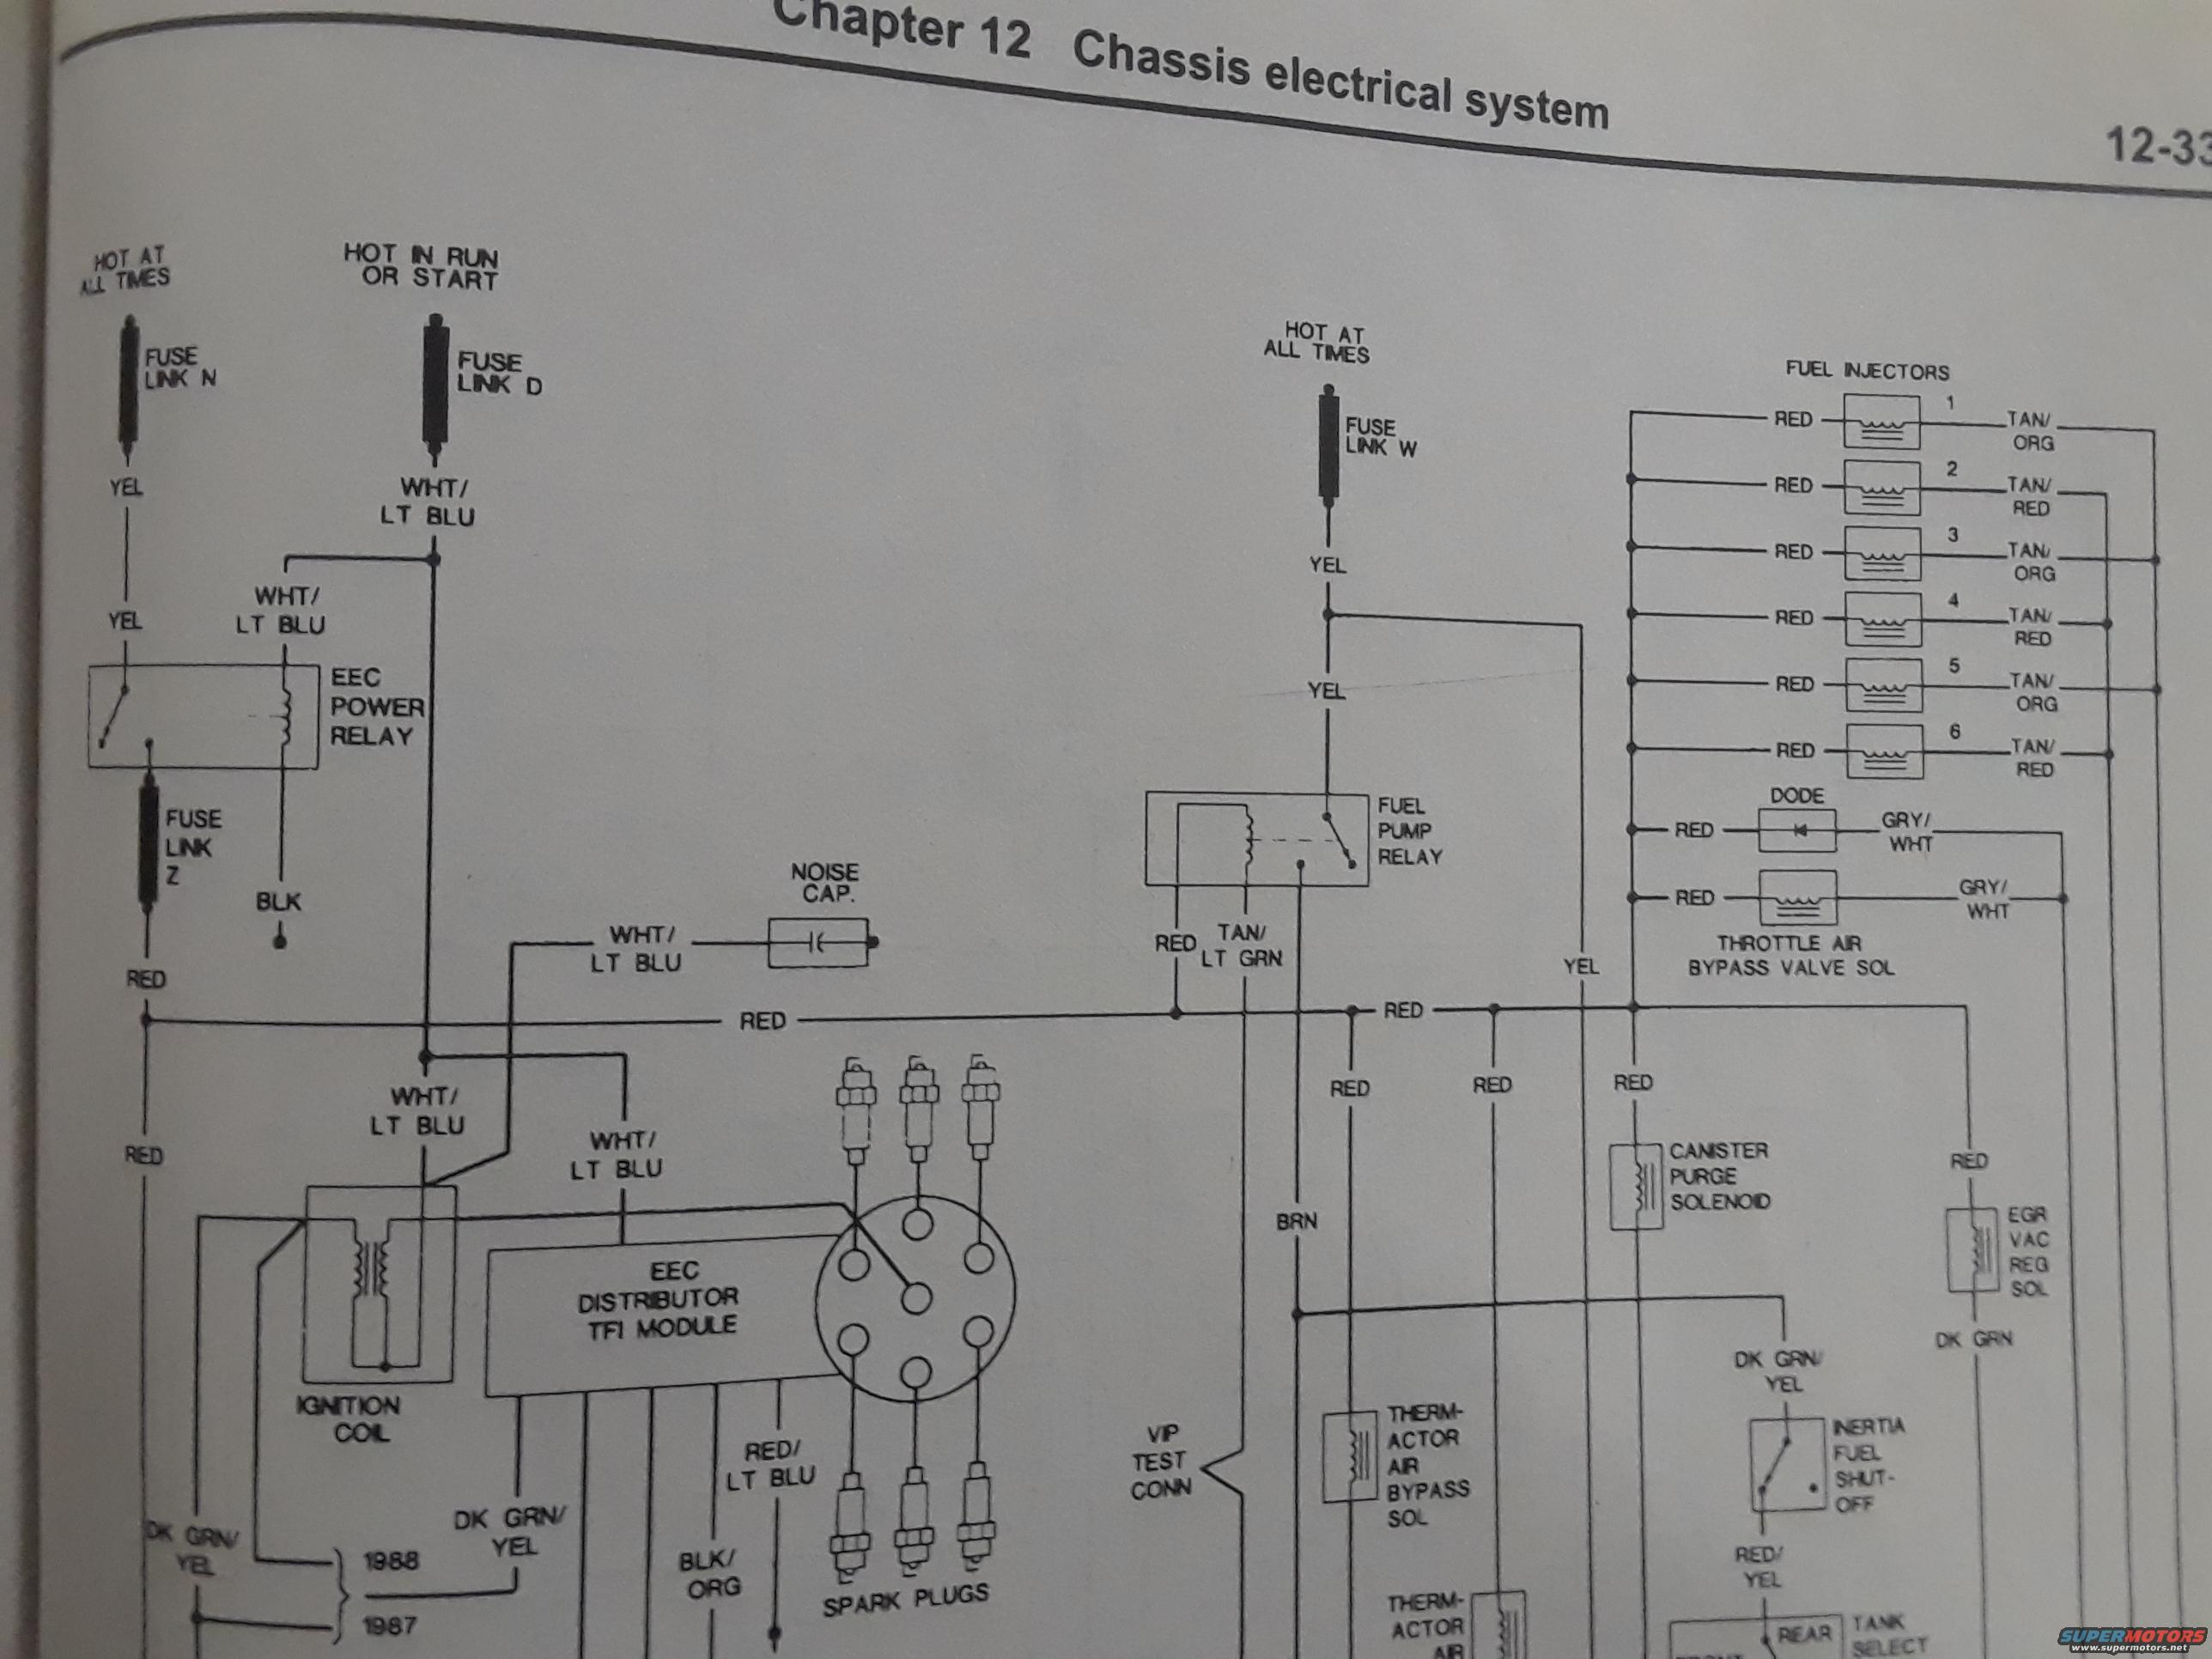 1996 Ford Bronco Wiring Diagram Additionally 89 Ford Bronco Wiring